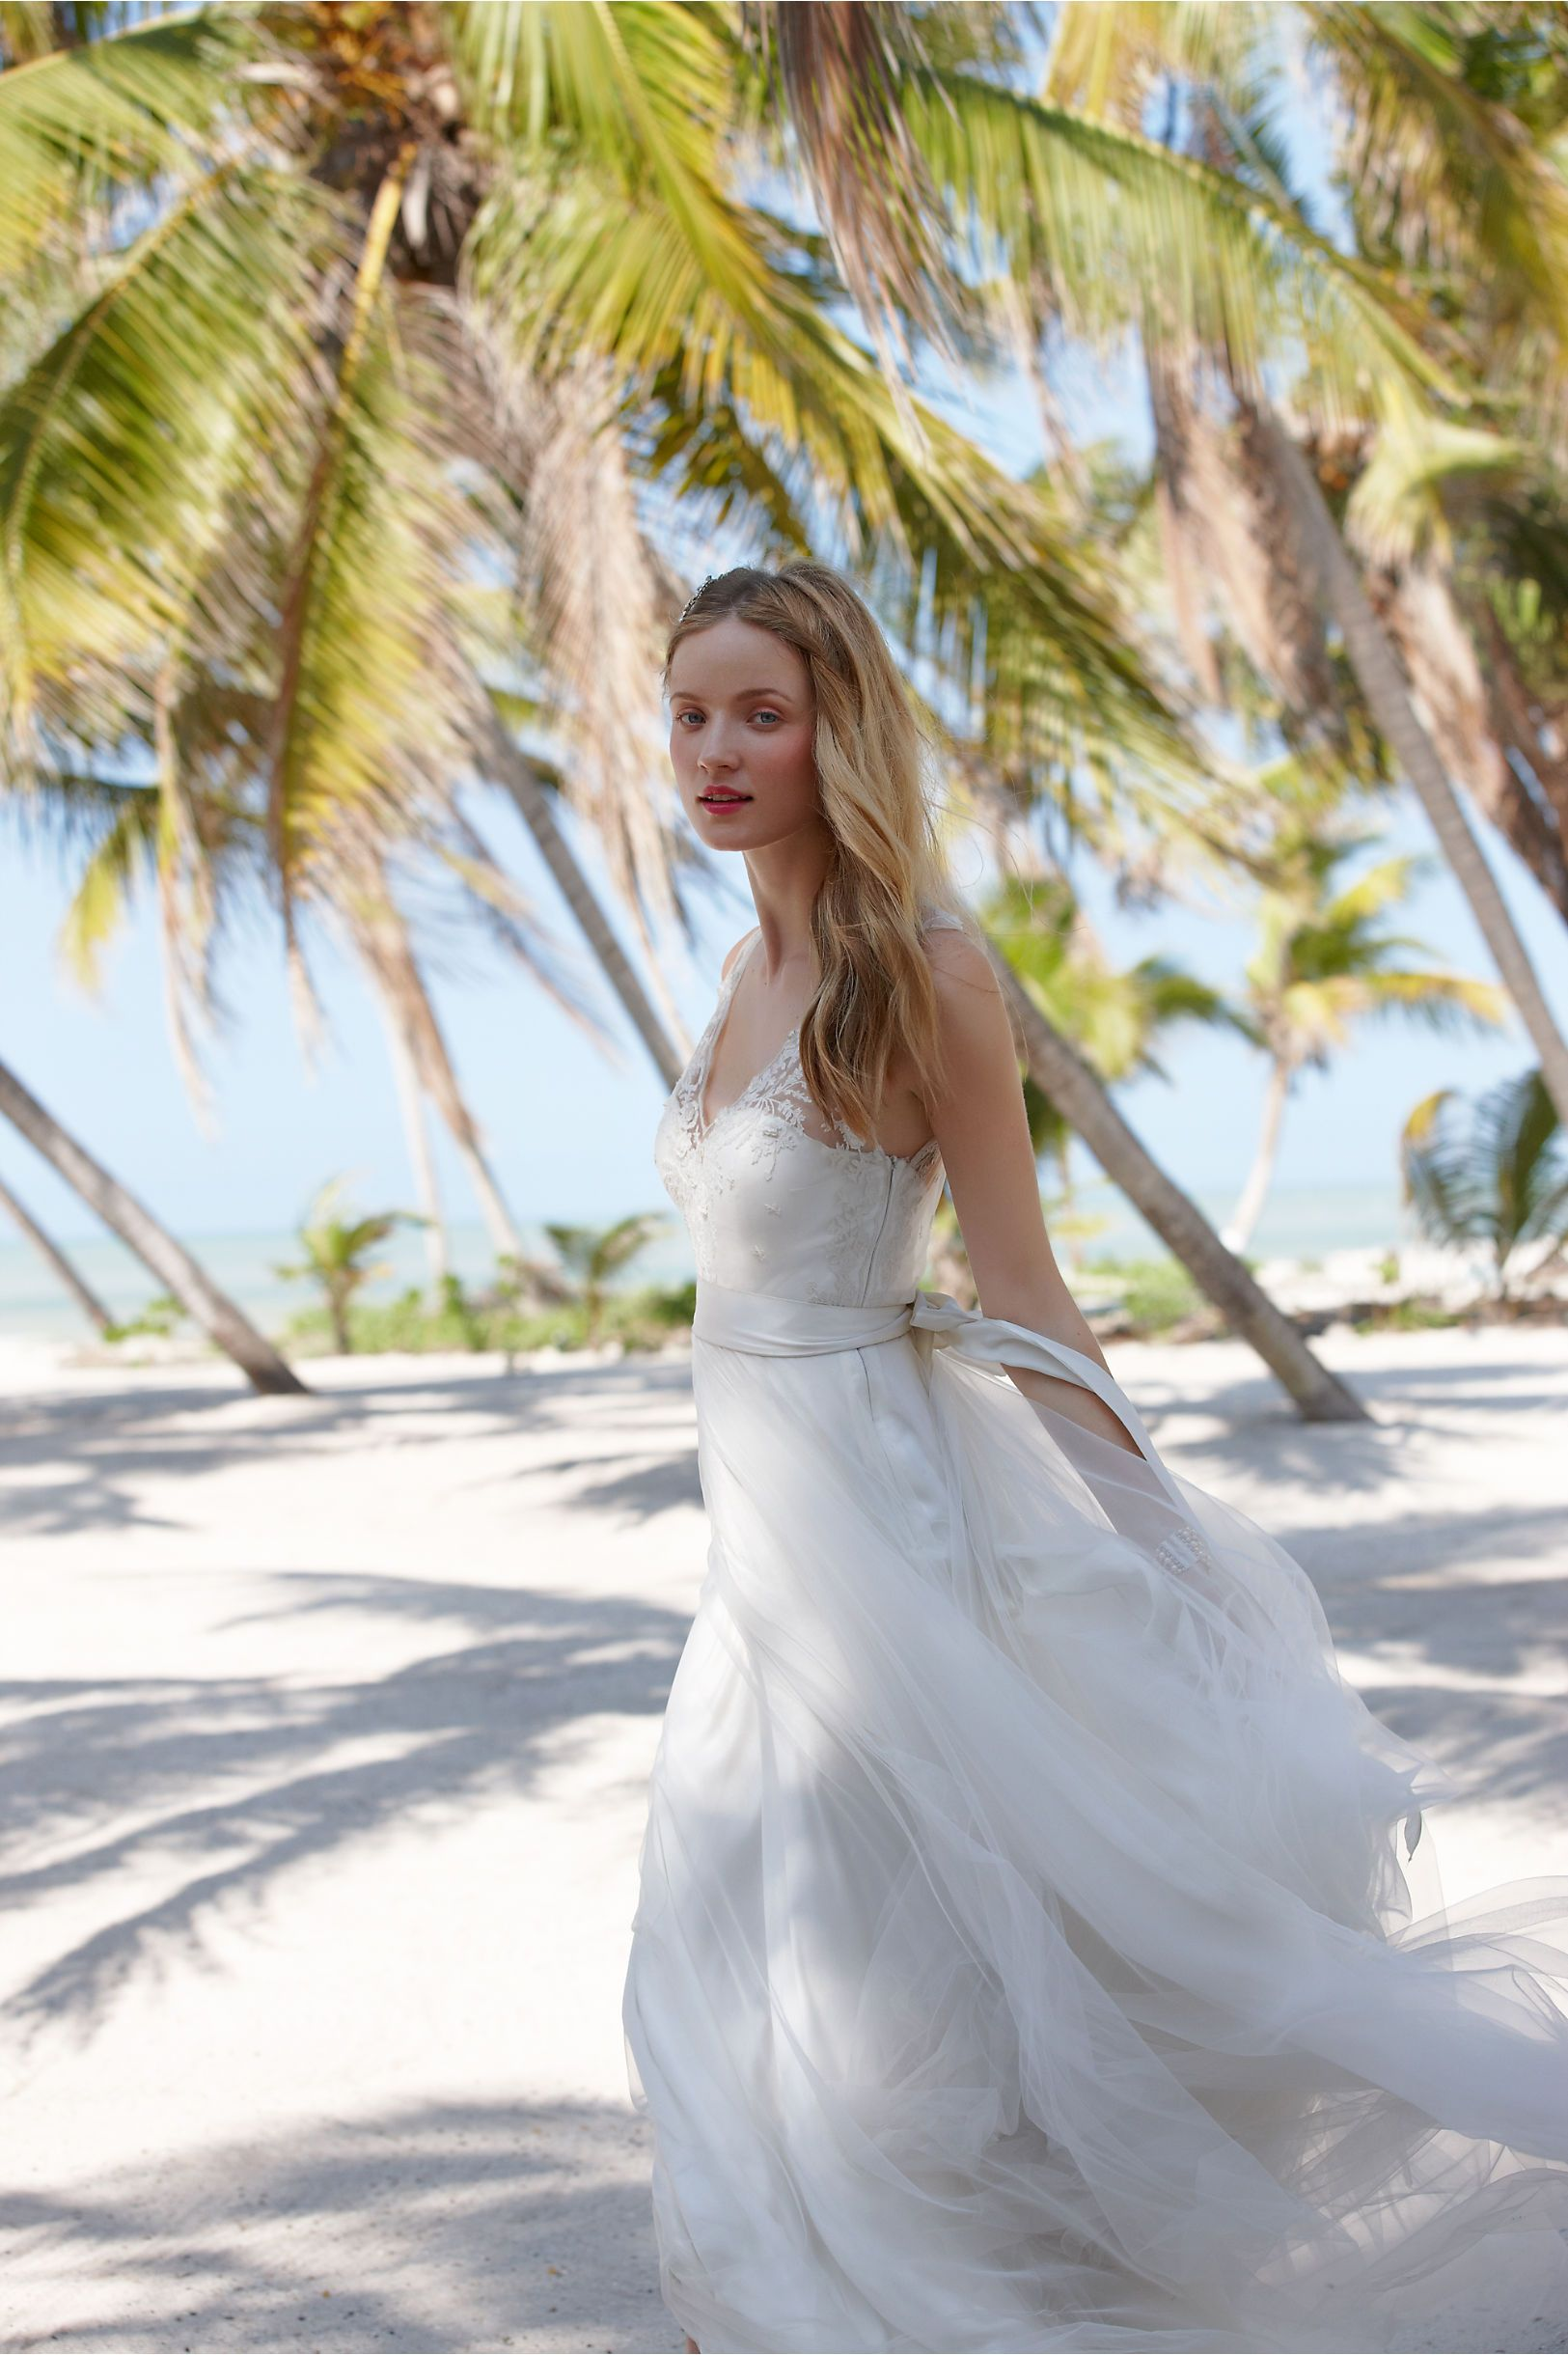 Onyx Gown at BHLDN   Weddings   Pinterest   Gowns, Wedding dress and ...